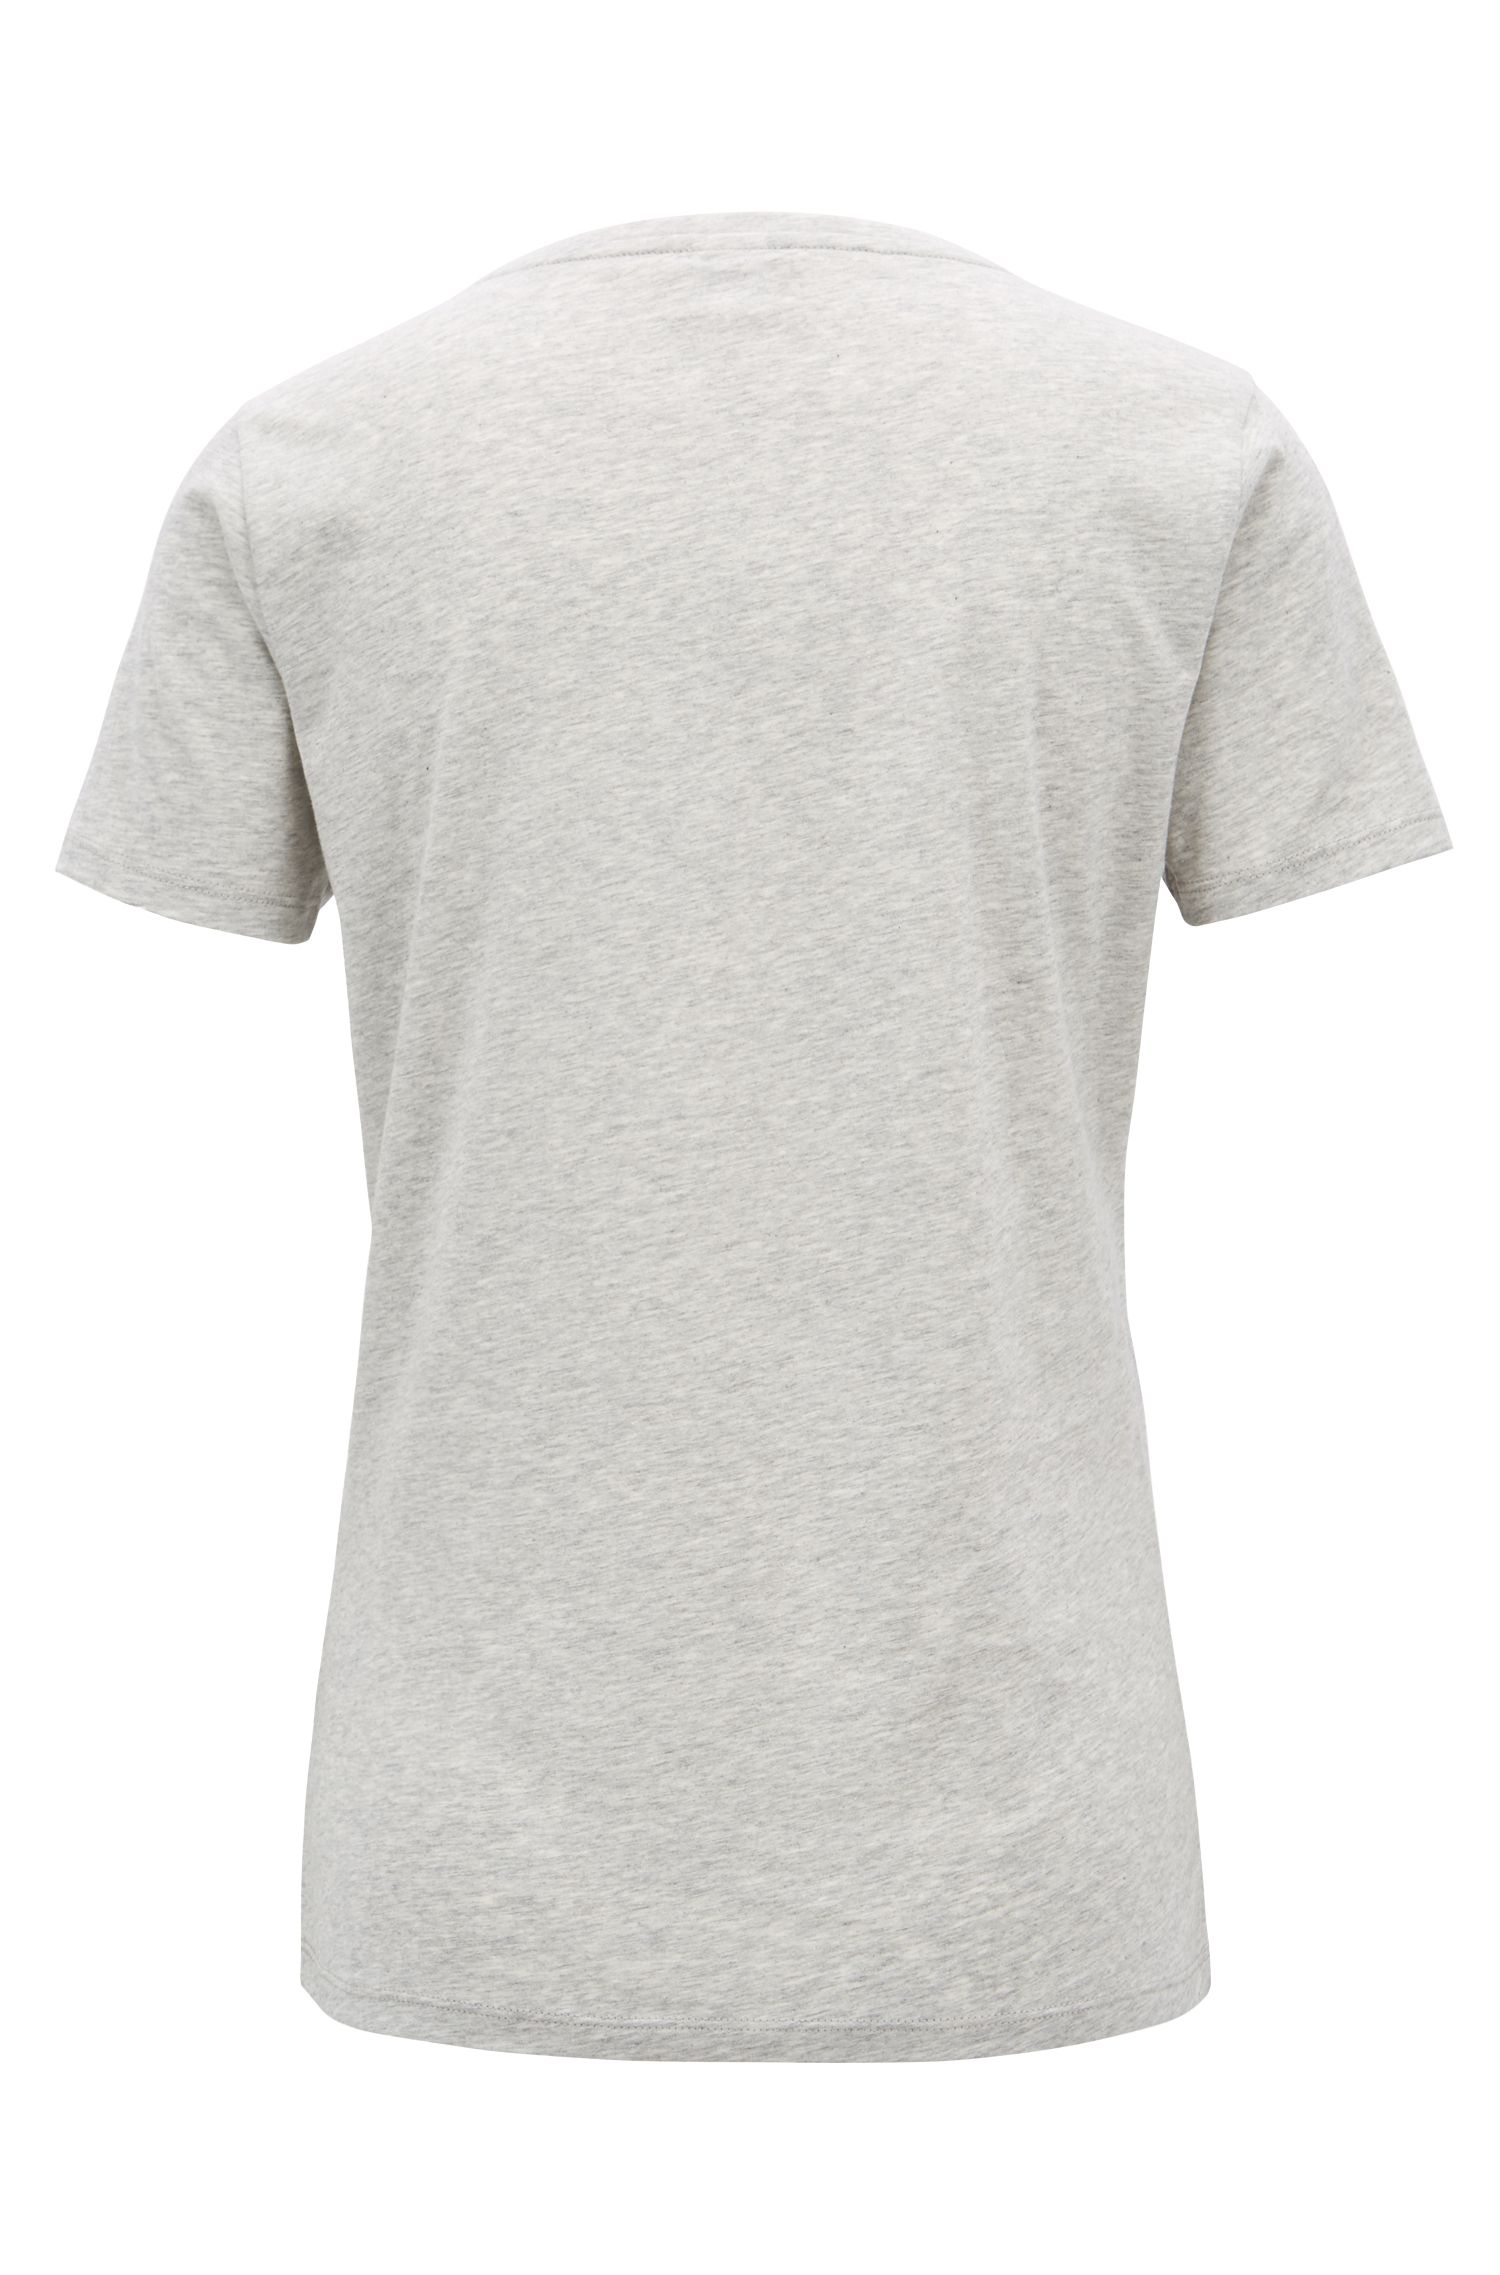 T-shirt slim fit in cotone con stampa grafica mista